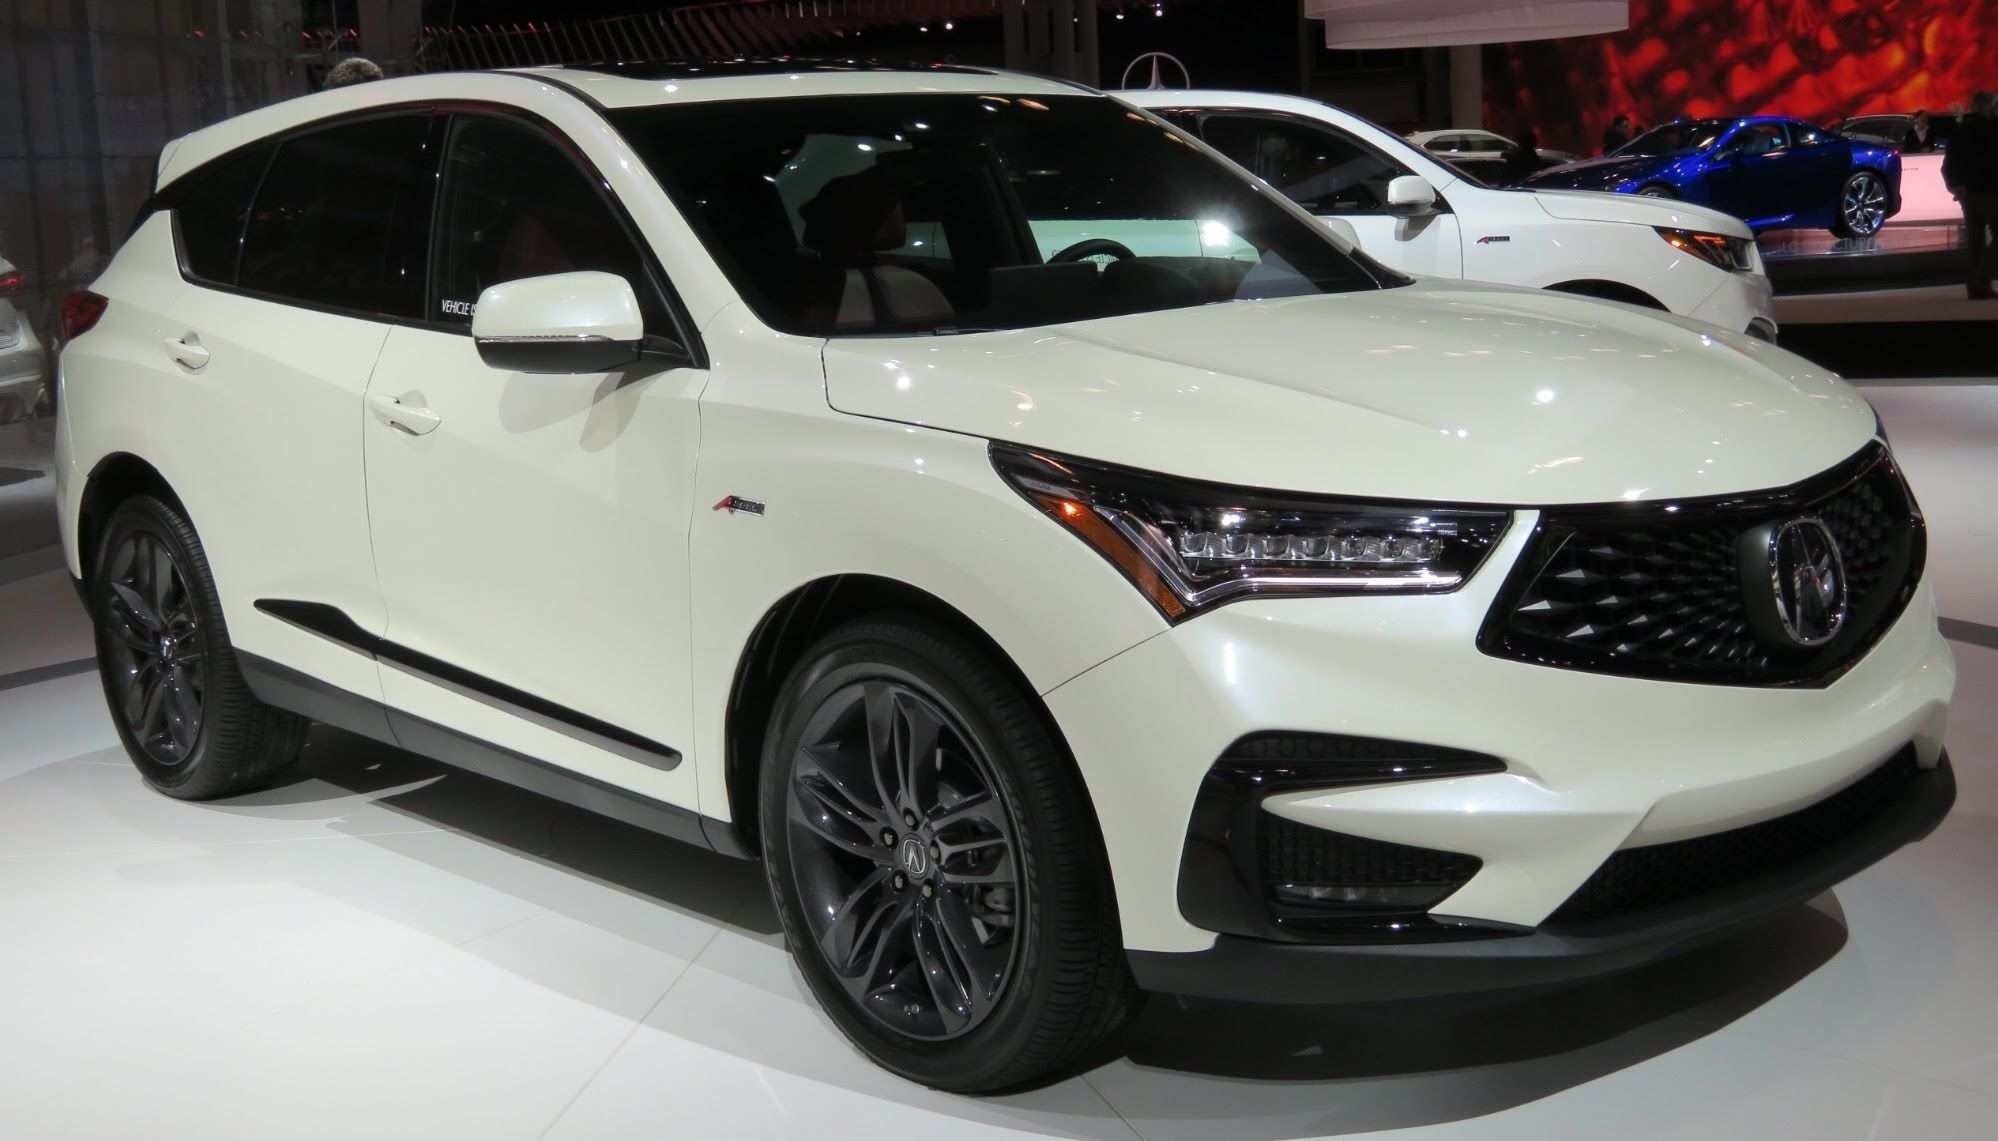 80 Great Best 2019 Acura Packages First Drive Specs with Best 2019 Acura Packages First Drive